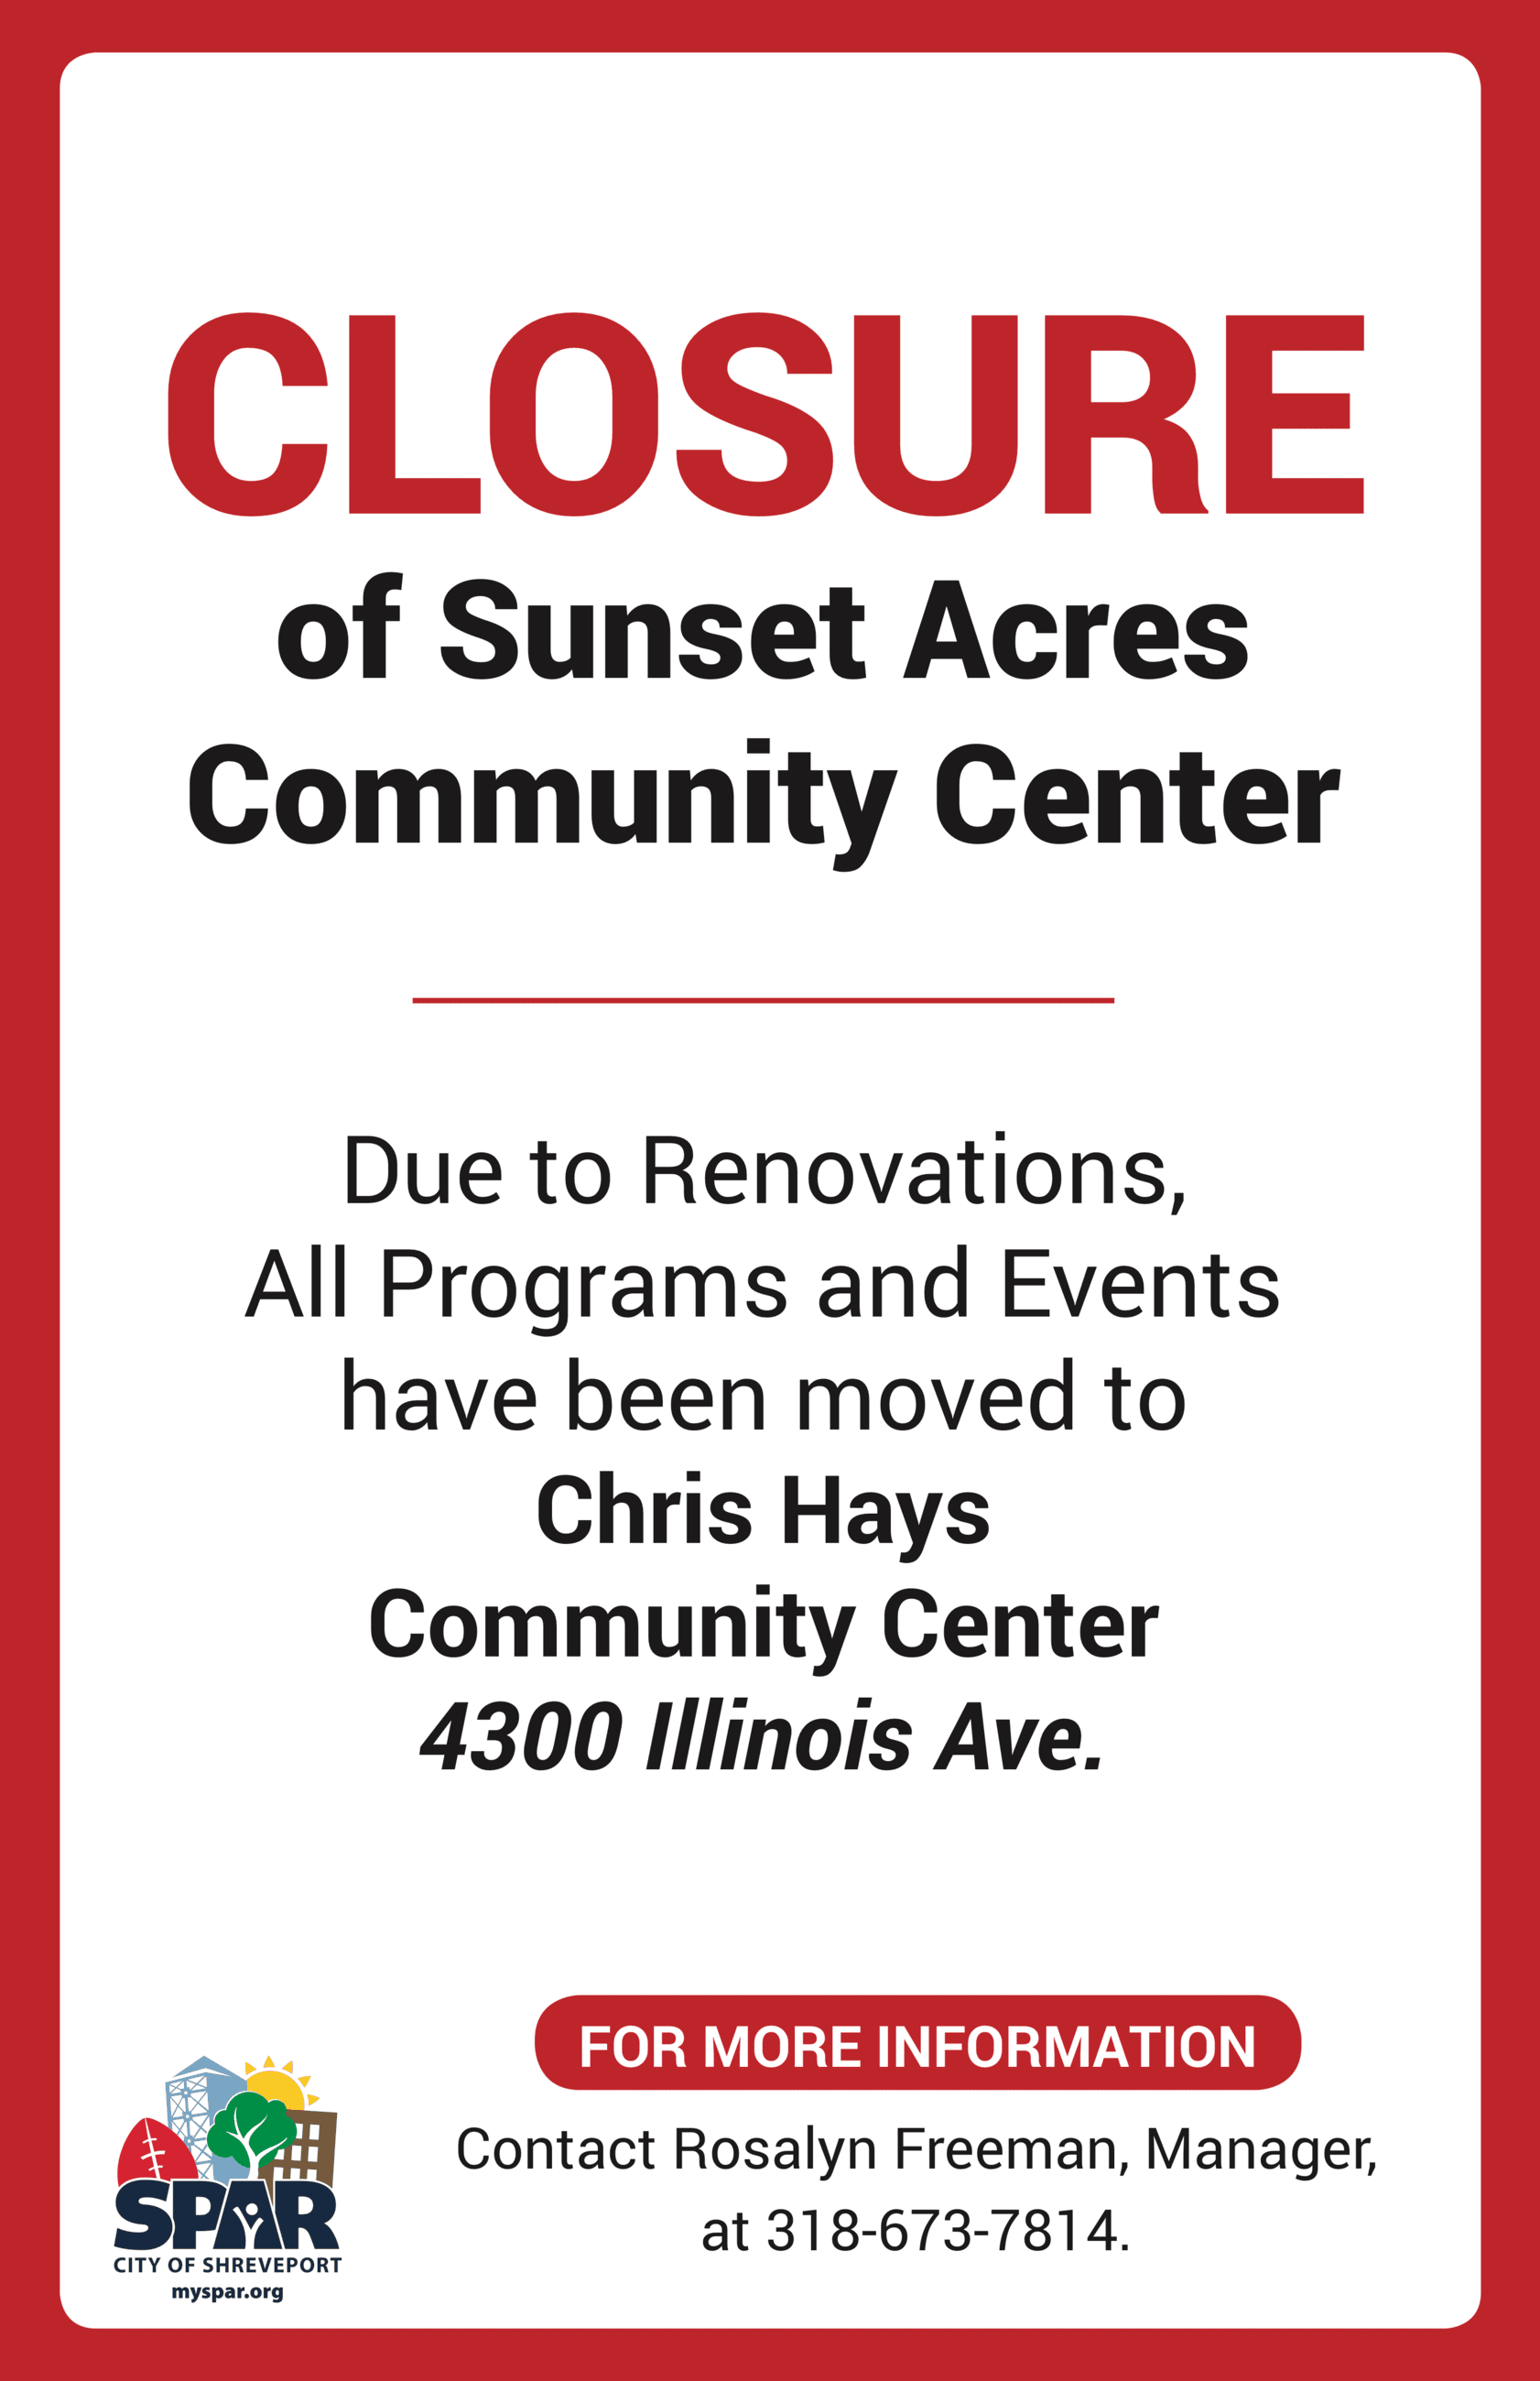 2018 11 Sunset Acres closure poster